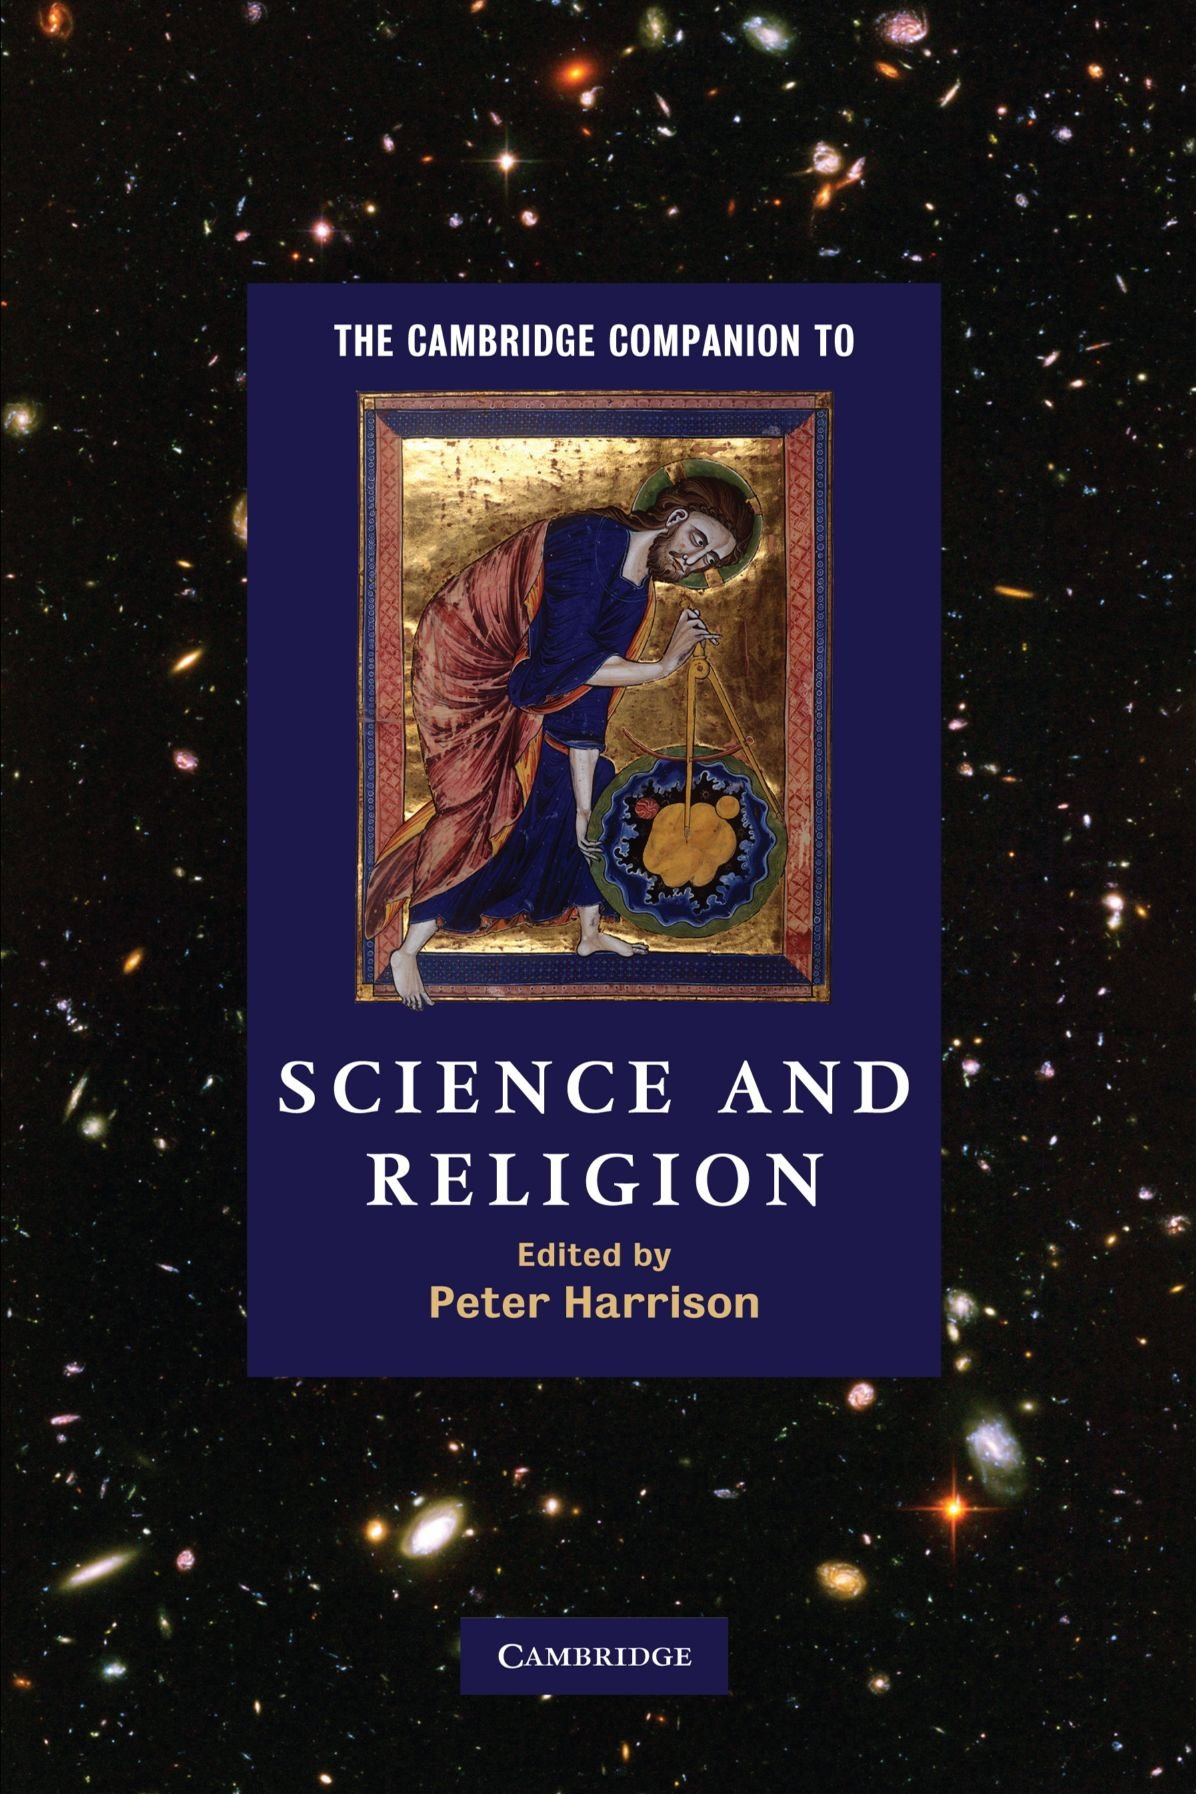 Peter Harrison (ed), Science and Religion, 2010